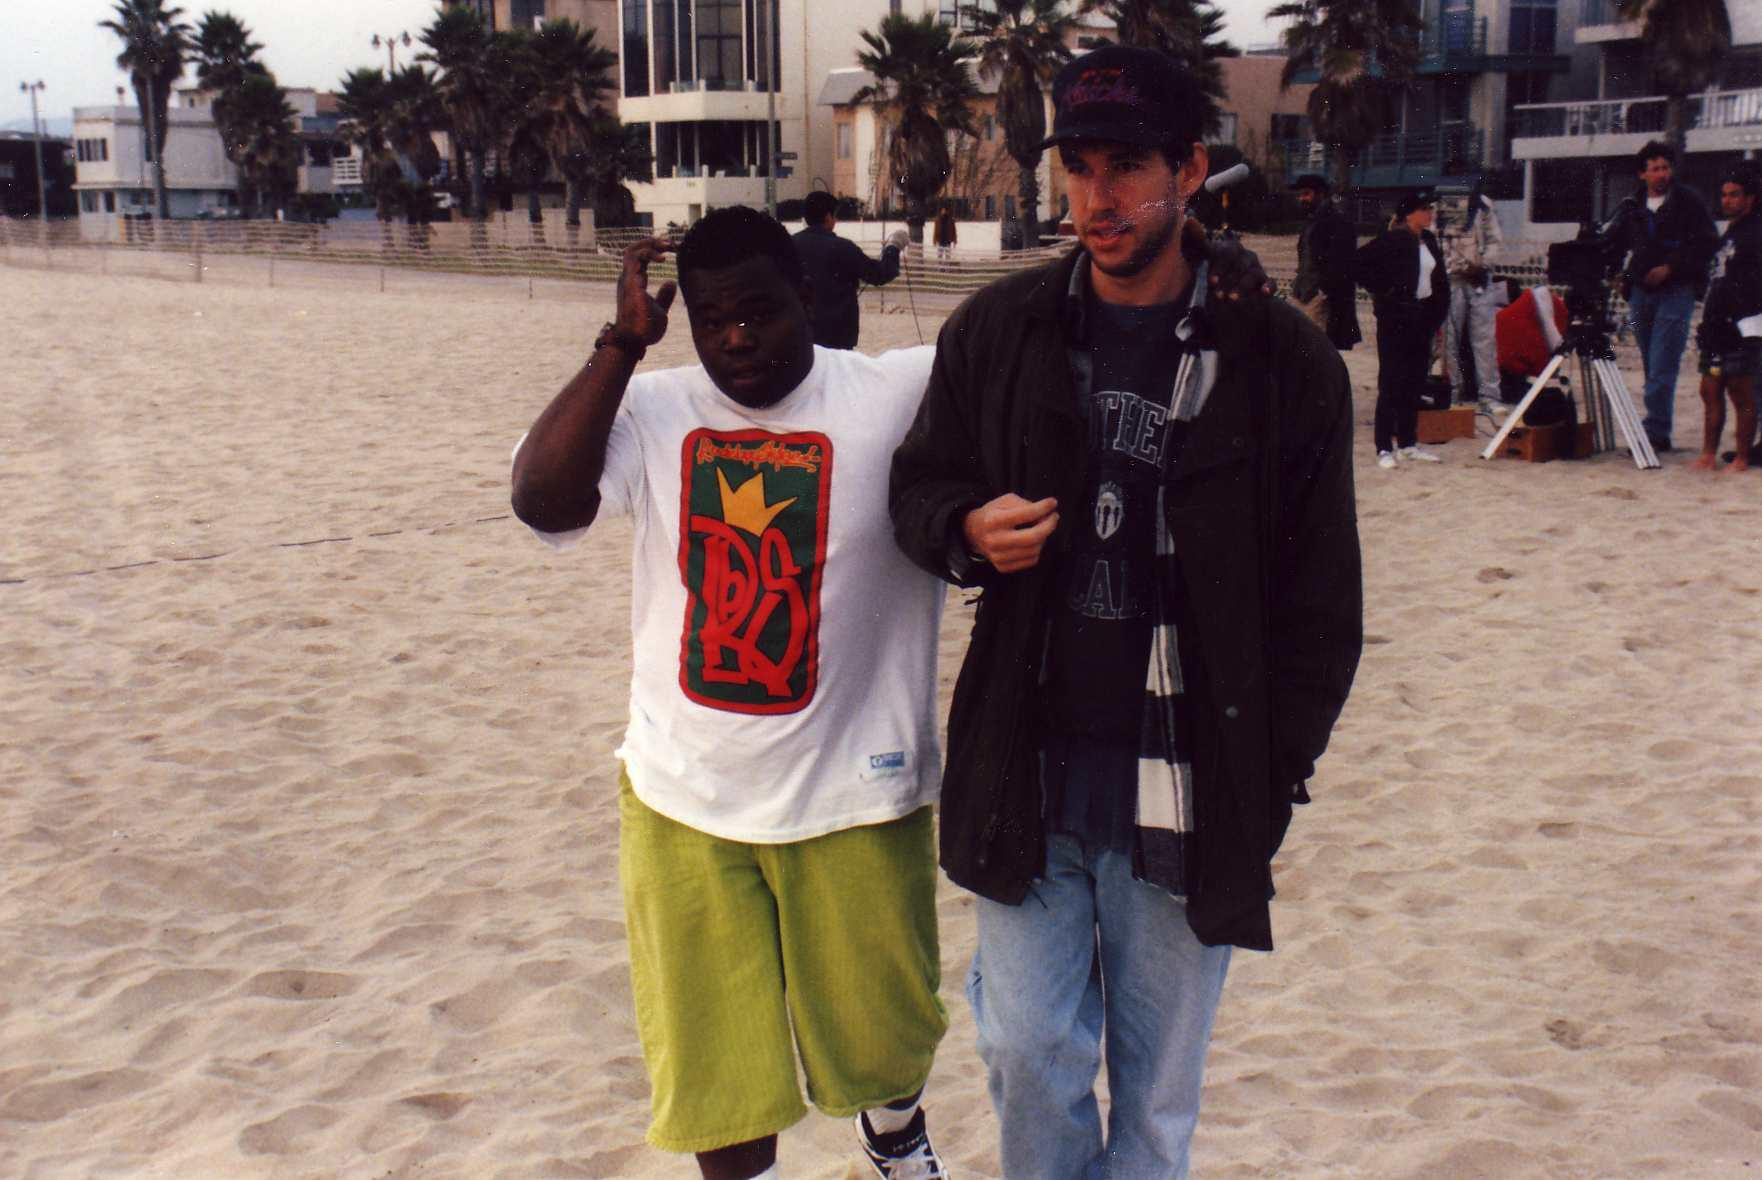 Jermaine and Doug on Phat Beach set